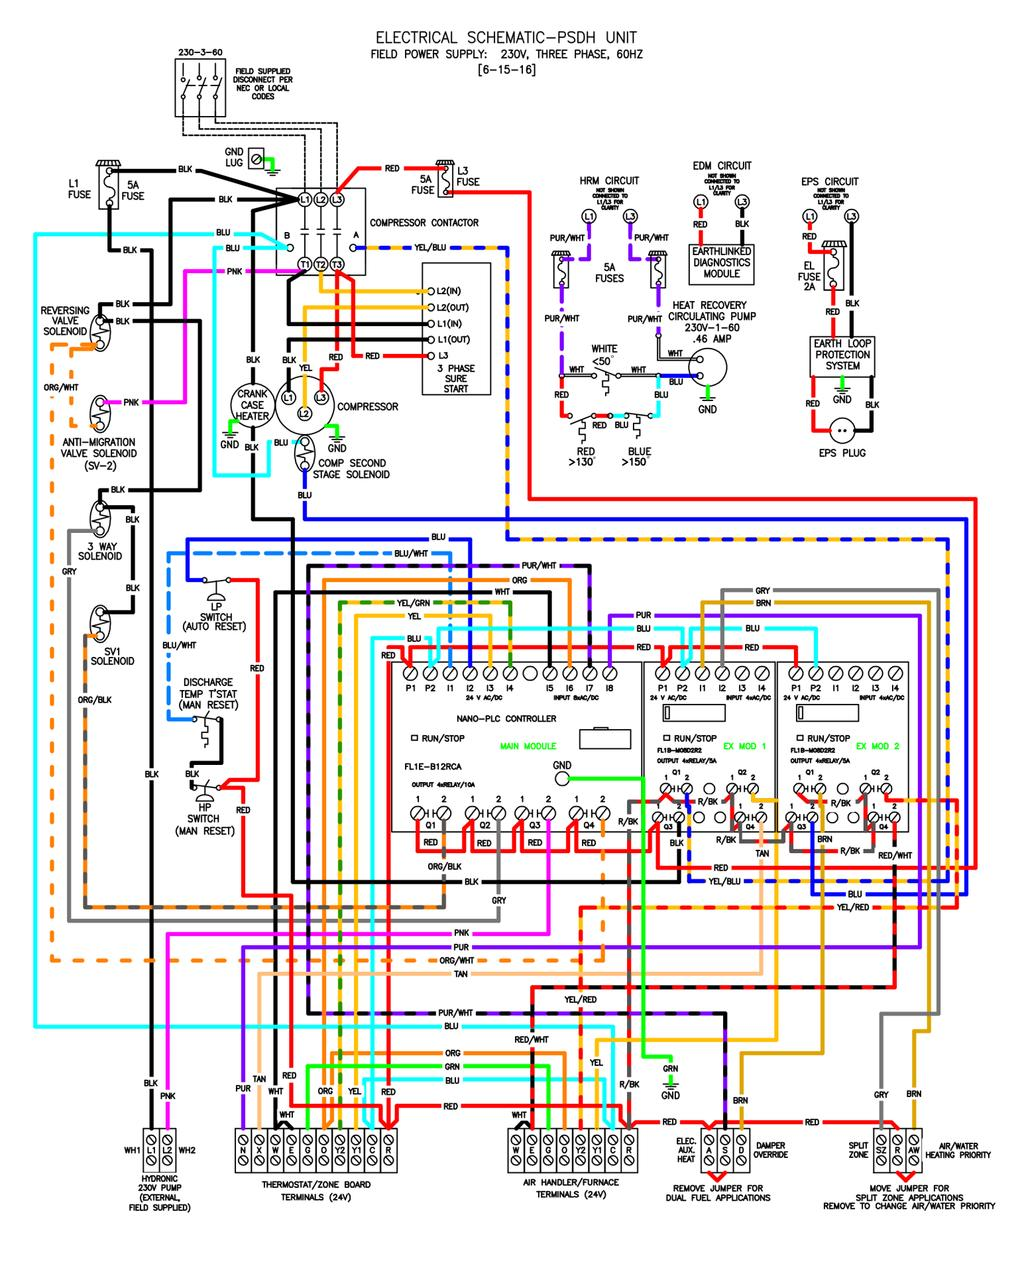 Prime Series Psdh Geothermal Heating And Cooling System Pdf Figure 17 Air Compressor Wiring Diagram 8b